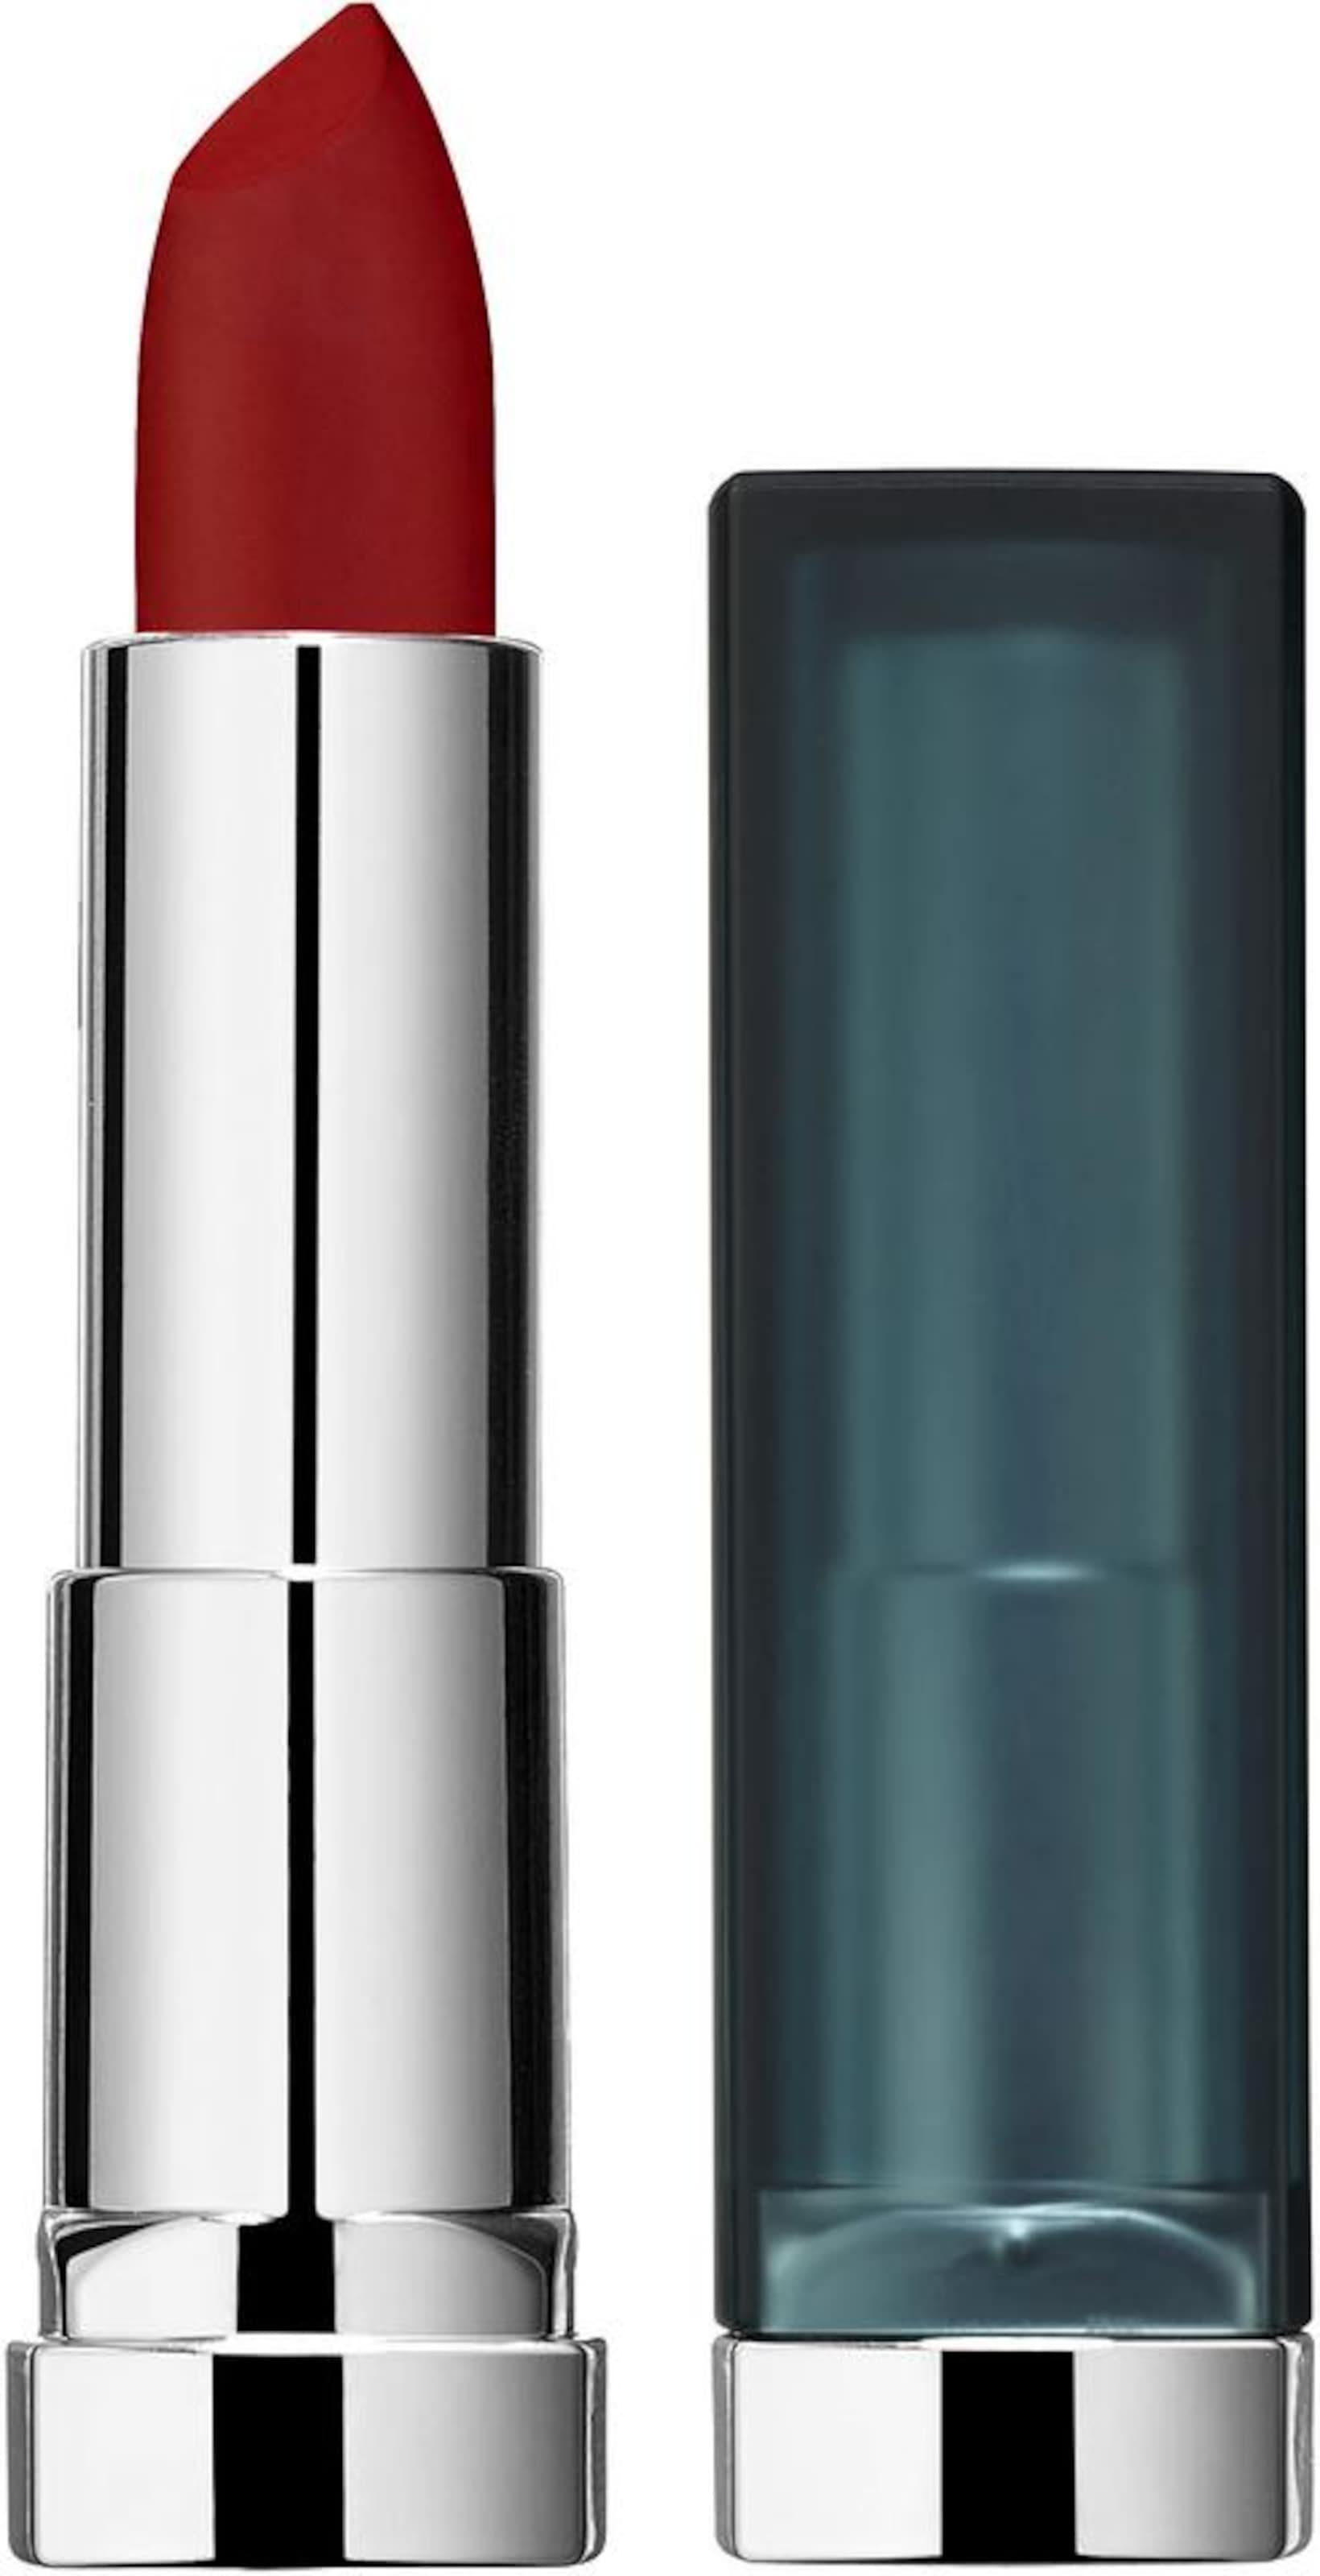 maybelline new york - ´Lippenstift Color Sensational Creamy Mattes´, Lippenstift